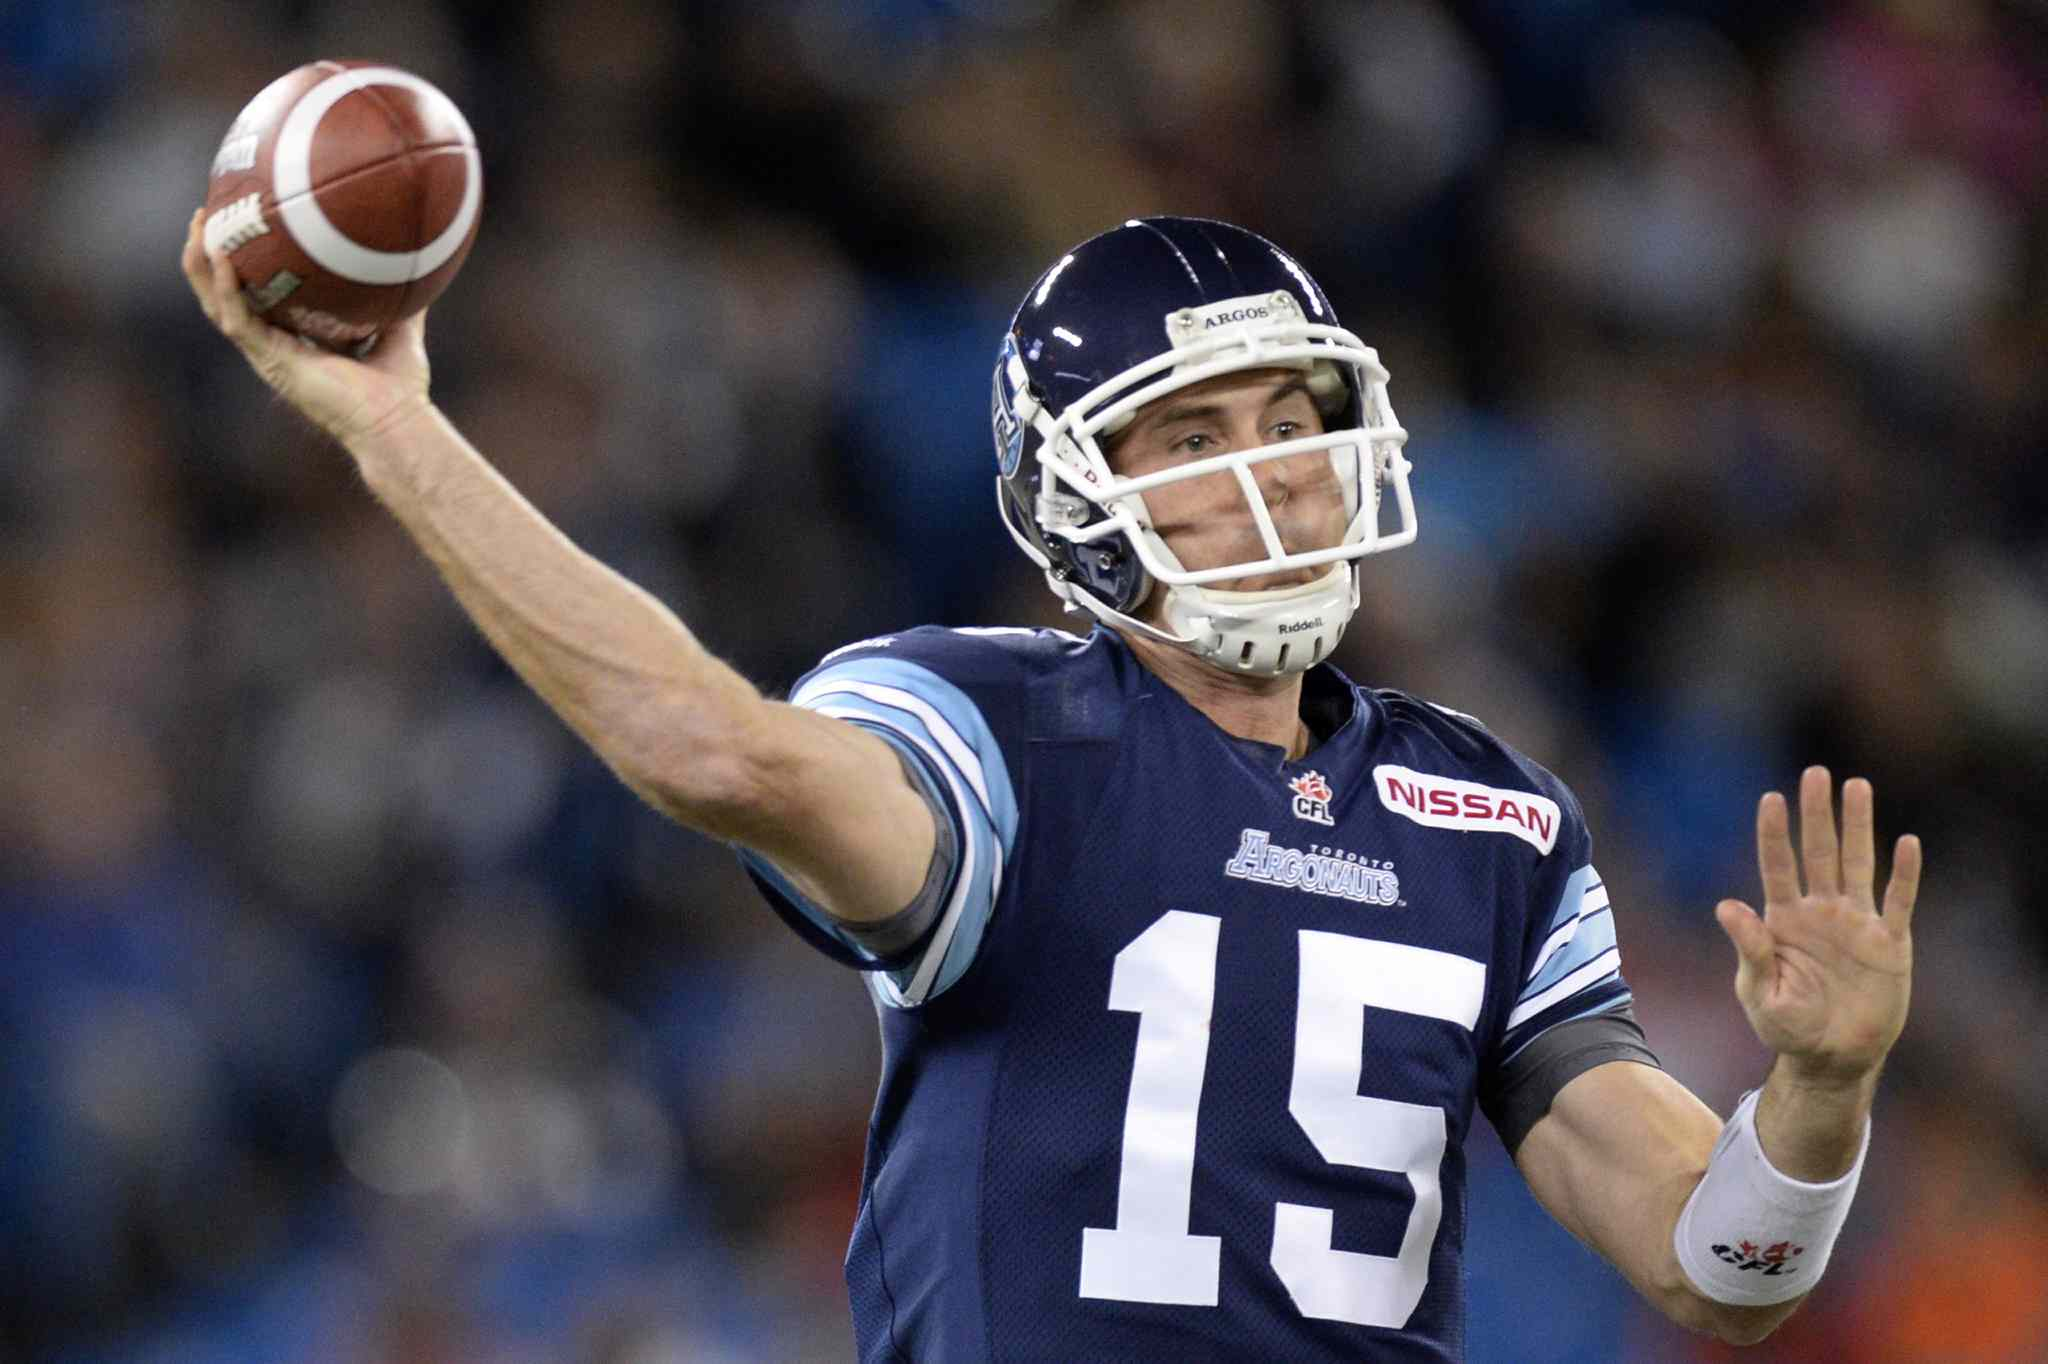 Toronto Argonauts' Ricky Ray throws a pass during the first quarter.